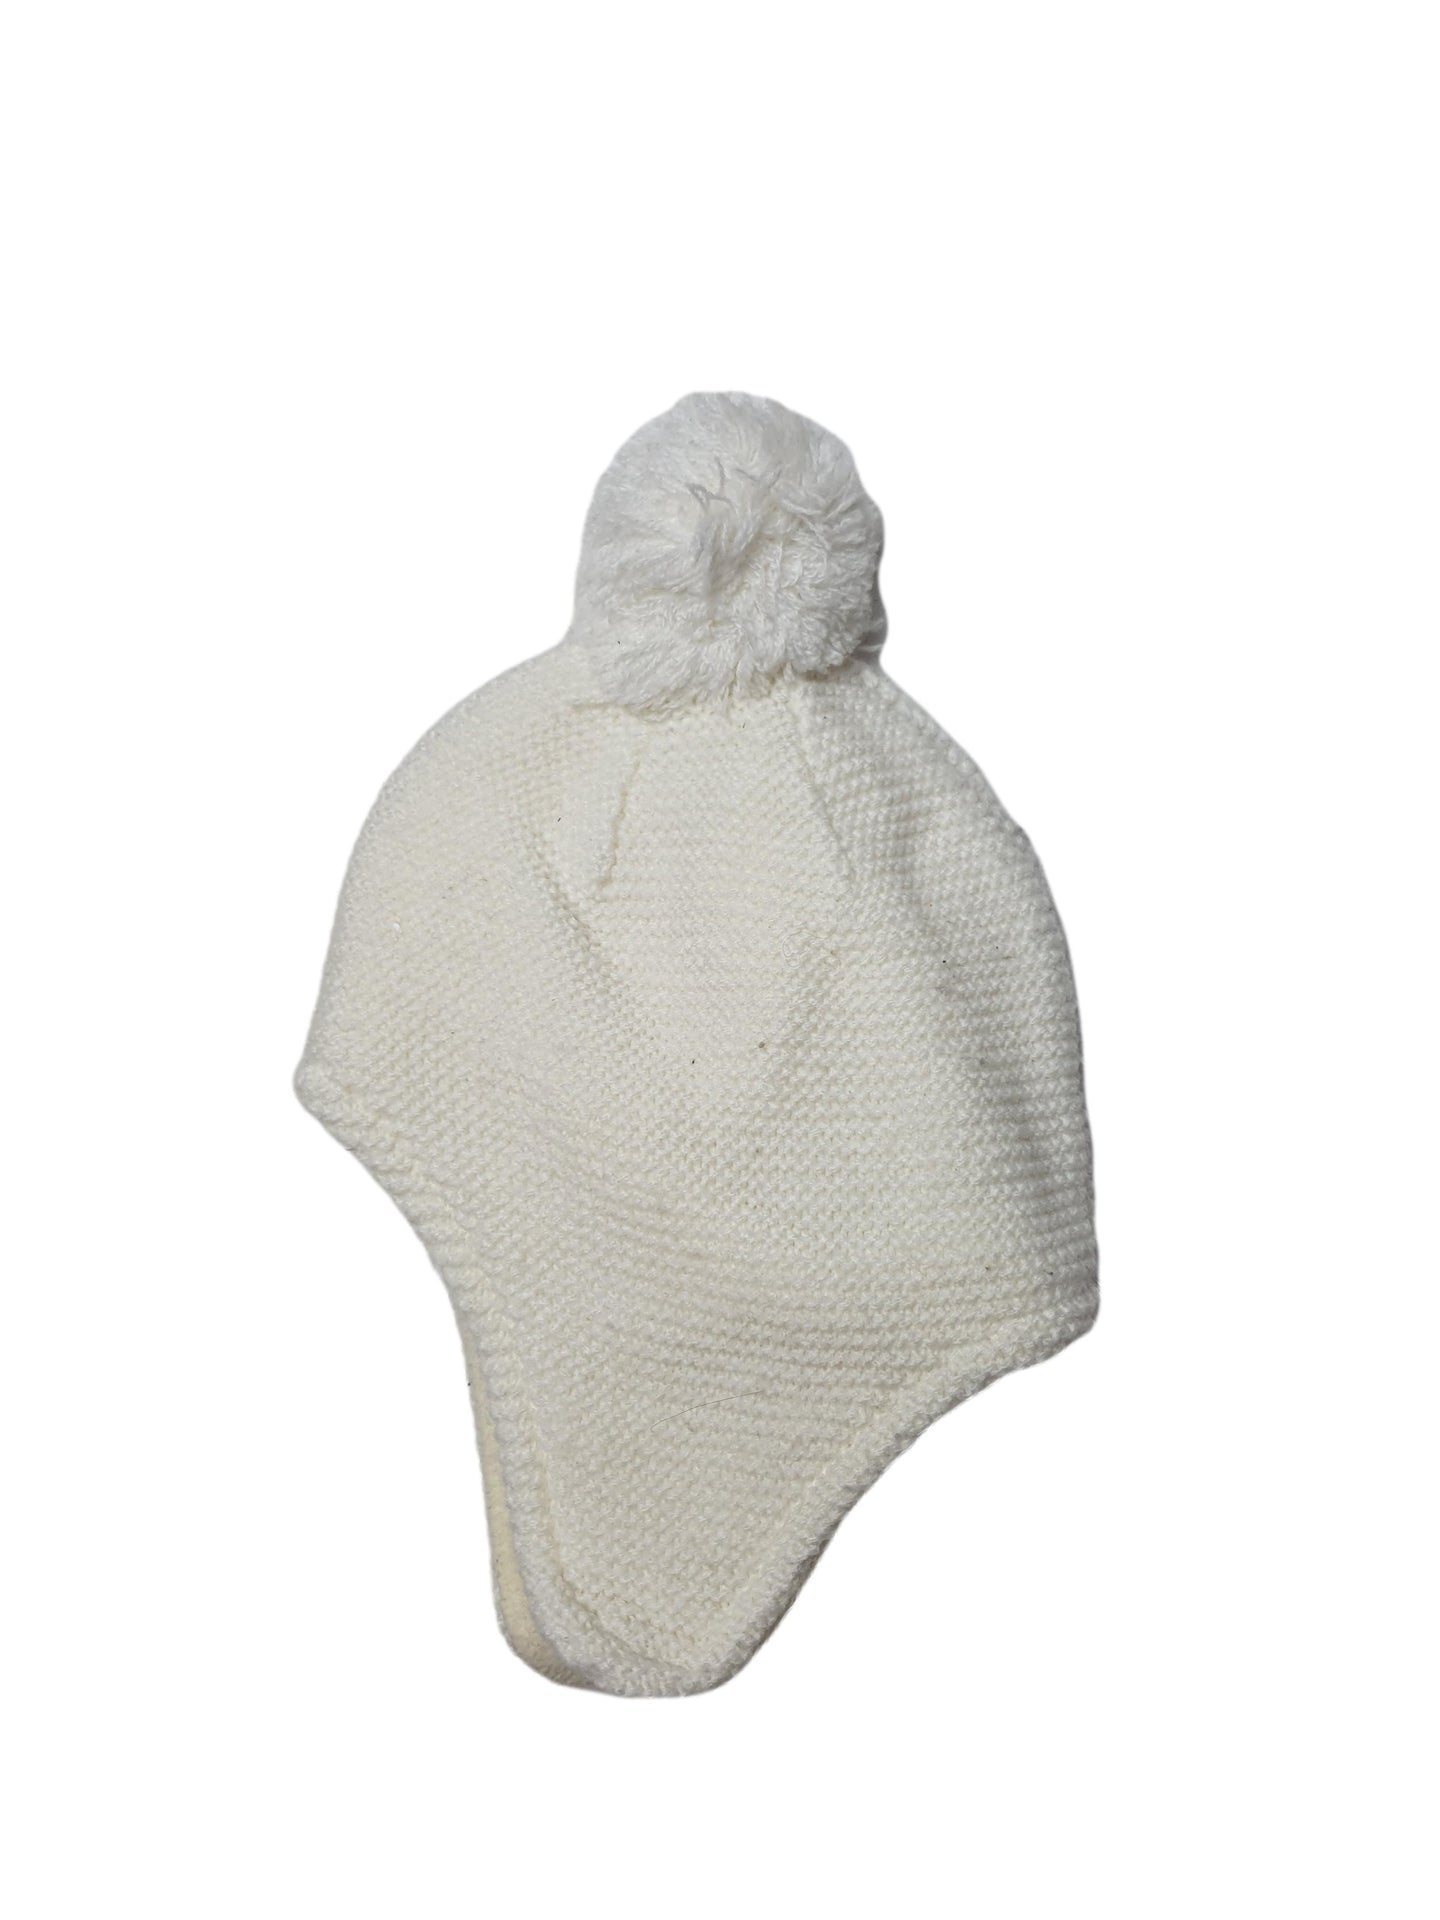 MONOPRIX boy or girl hat 6-12m